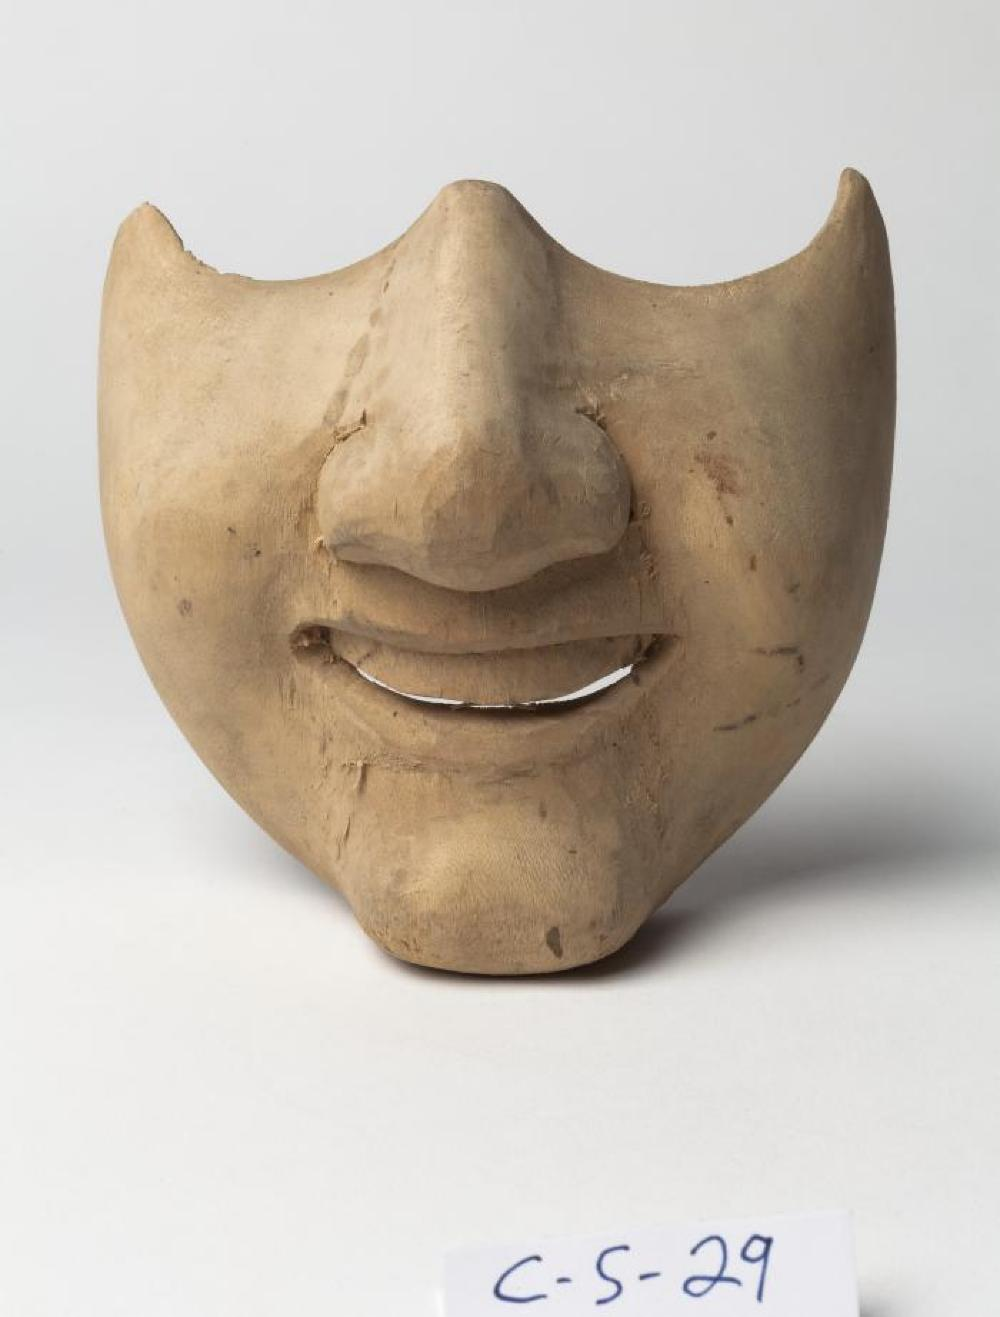 Balinese; Topeng Bondres Mask; c. 1950; Wood; 5 x 5 1/2 x 2 3/4 in.; Collection of Isamu Noguchi. (Study Collection; Collectibles, C-S-29)